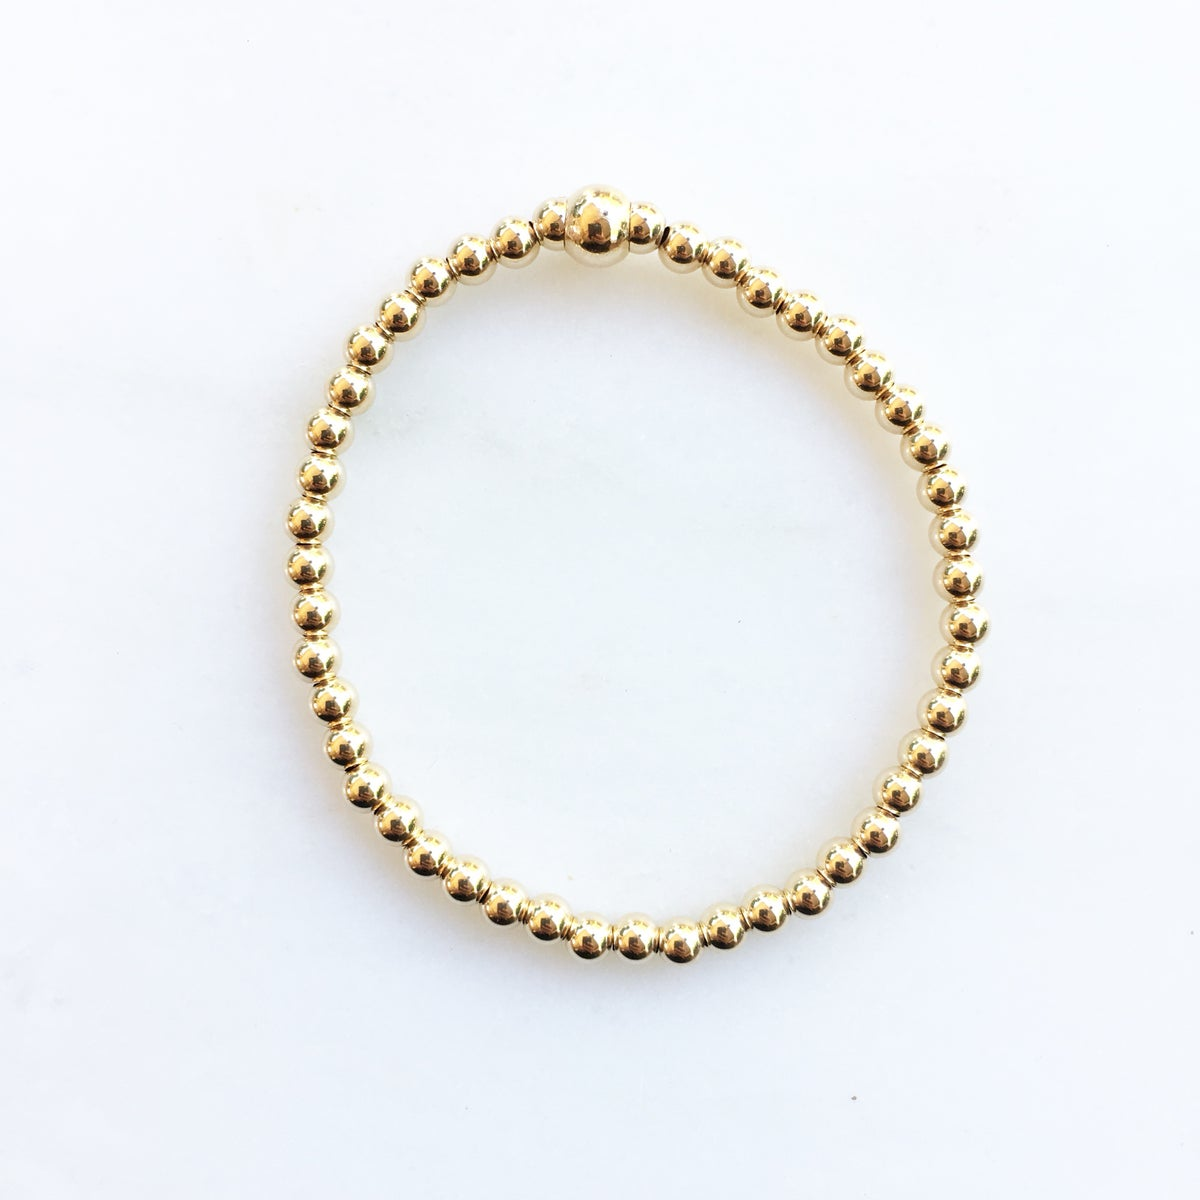 Image of TenThings. Small. 4mm GOLD. Beaded. Bracelet. B-GLDBD4MM